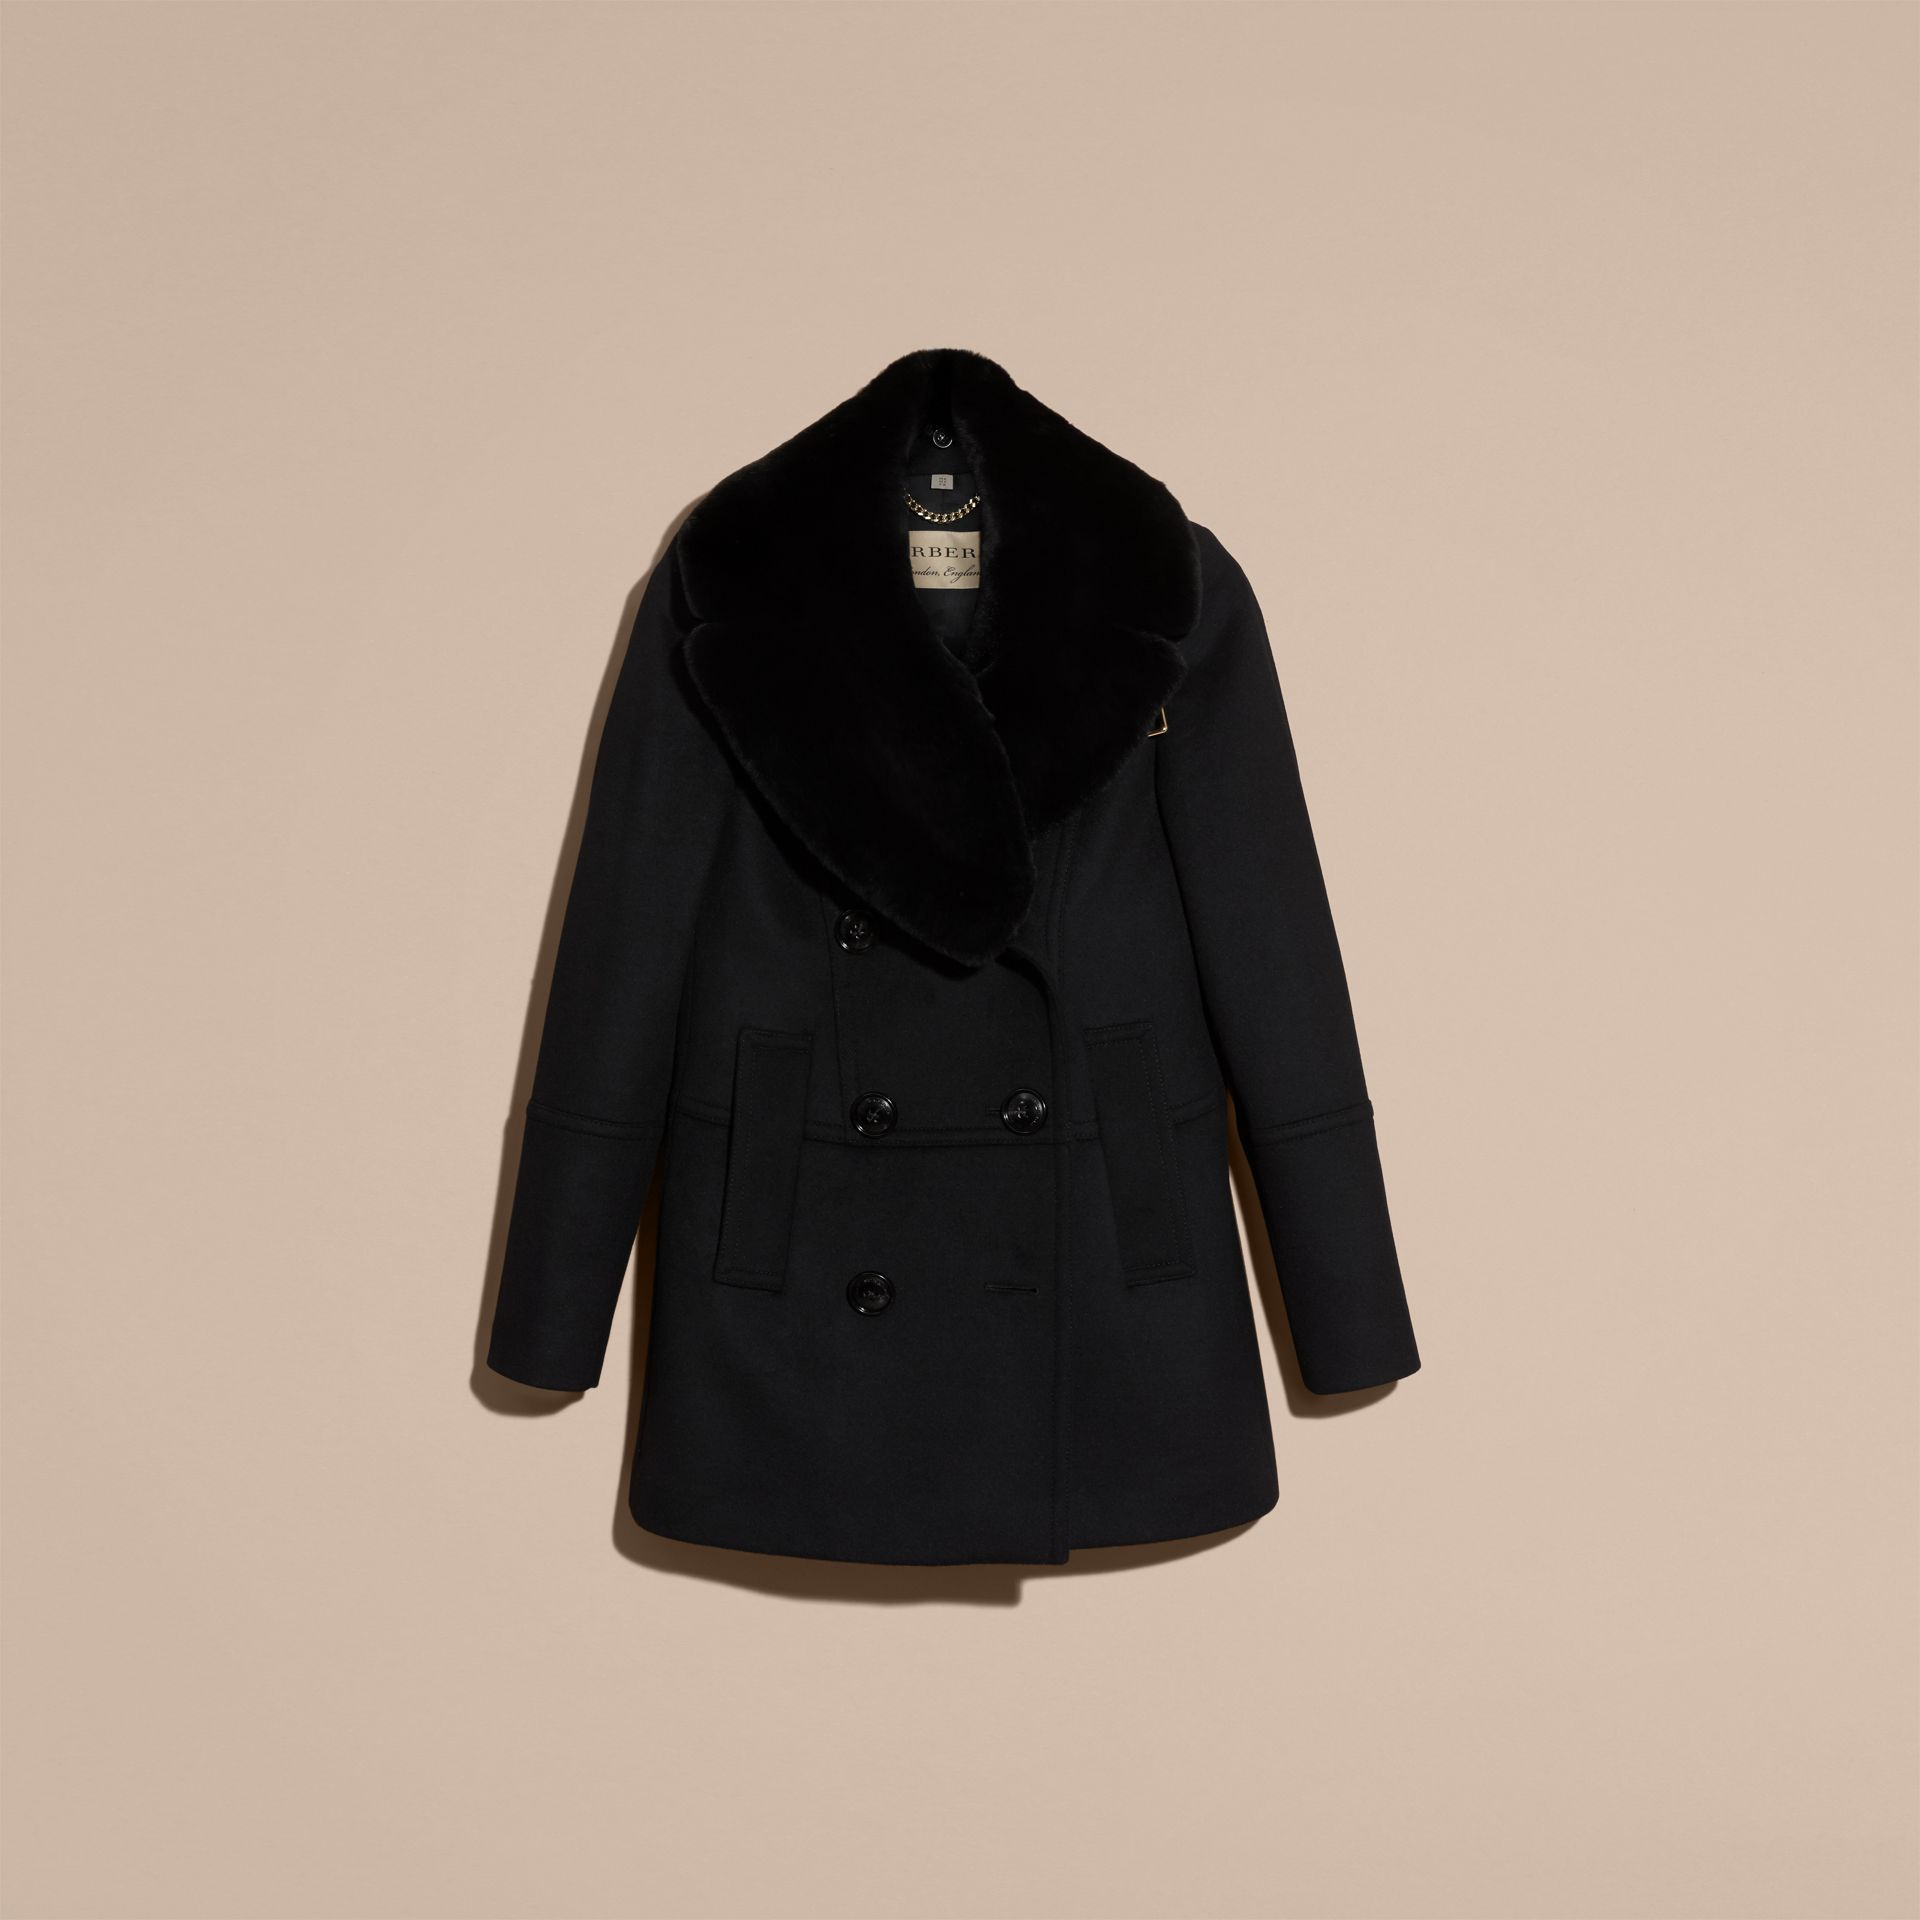 Black Wool Cashmere Pea Coat with Detachable Fur Collar - gallery image 4